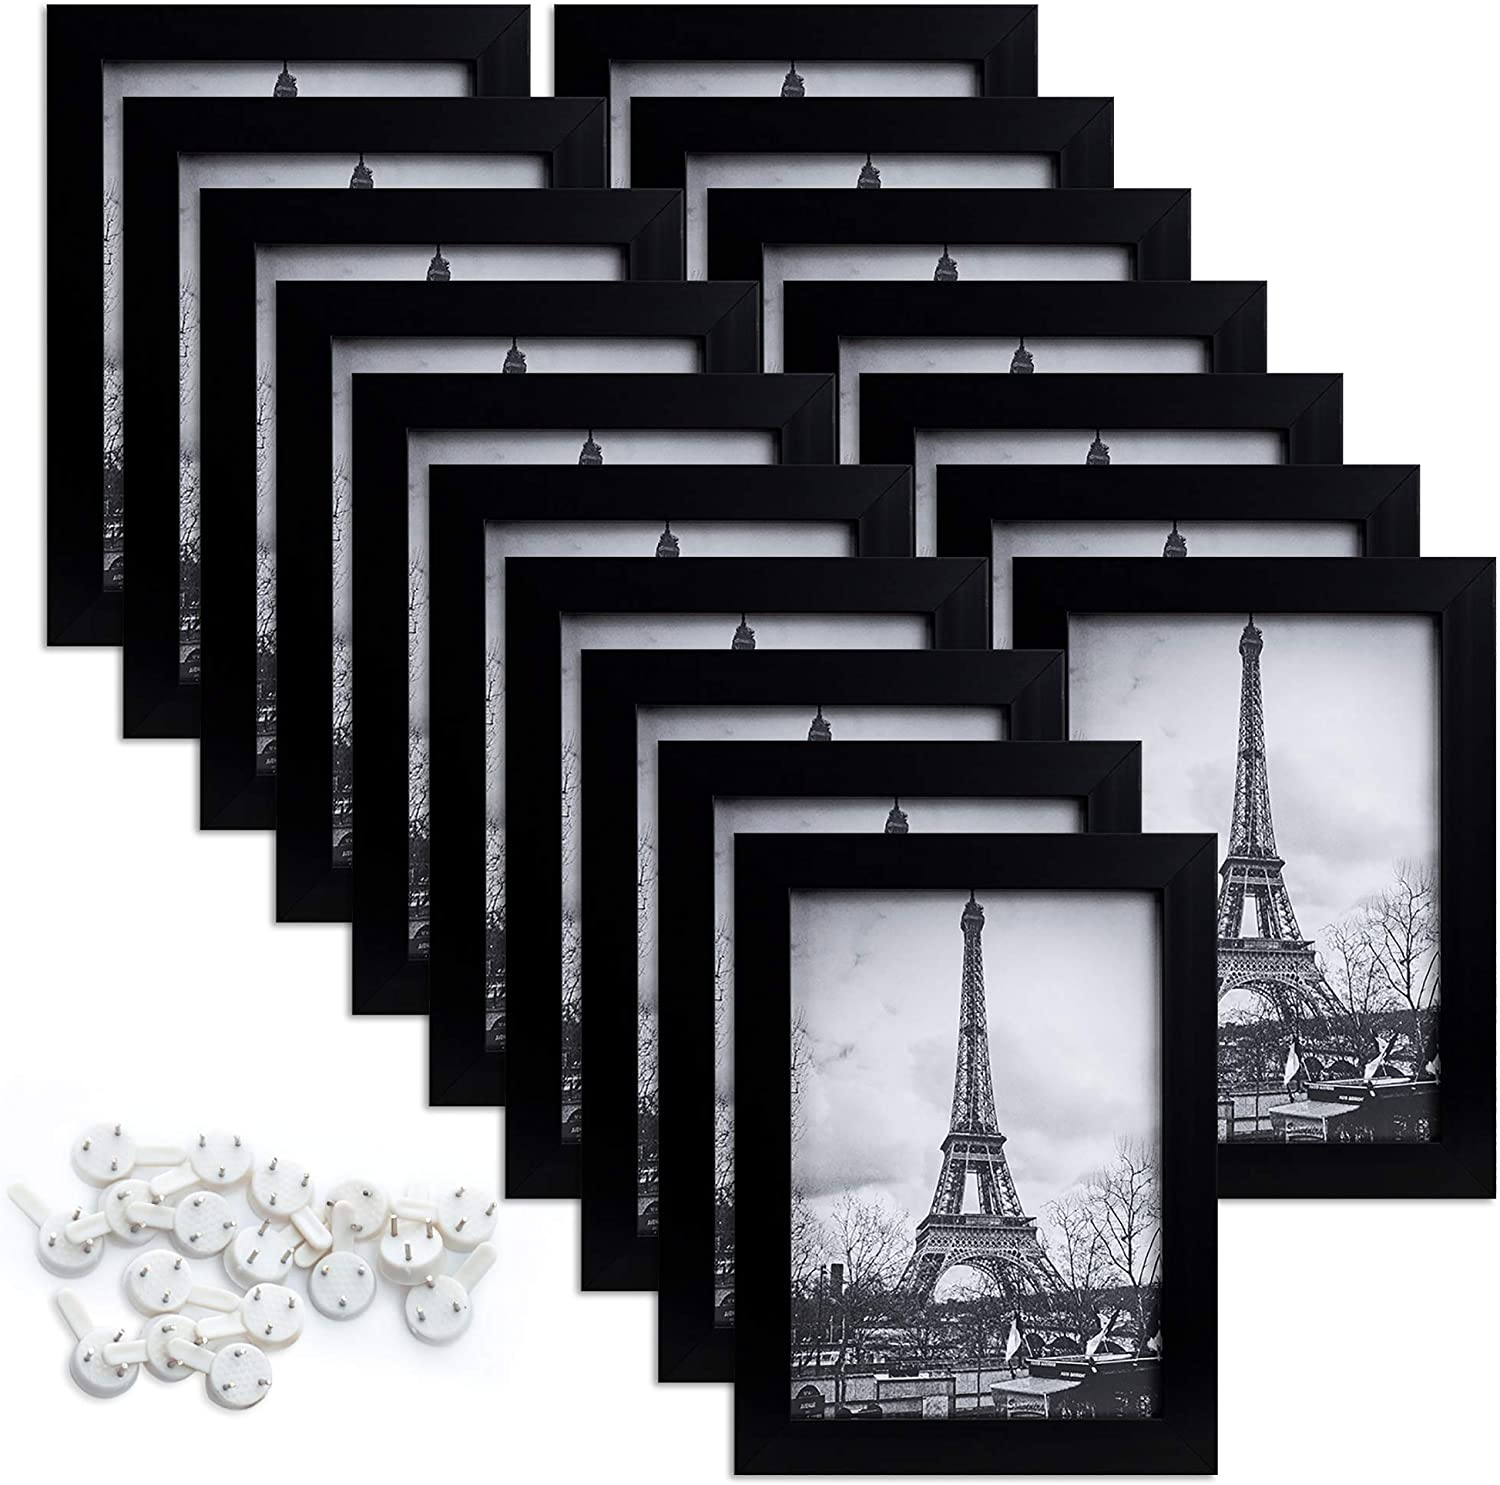 upsimples 5x7 Picture Frame with Max 61% OFF Real Glass Photo Frames Sale SALE% OFF fo Bulk